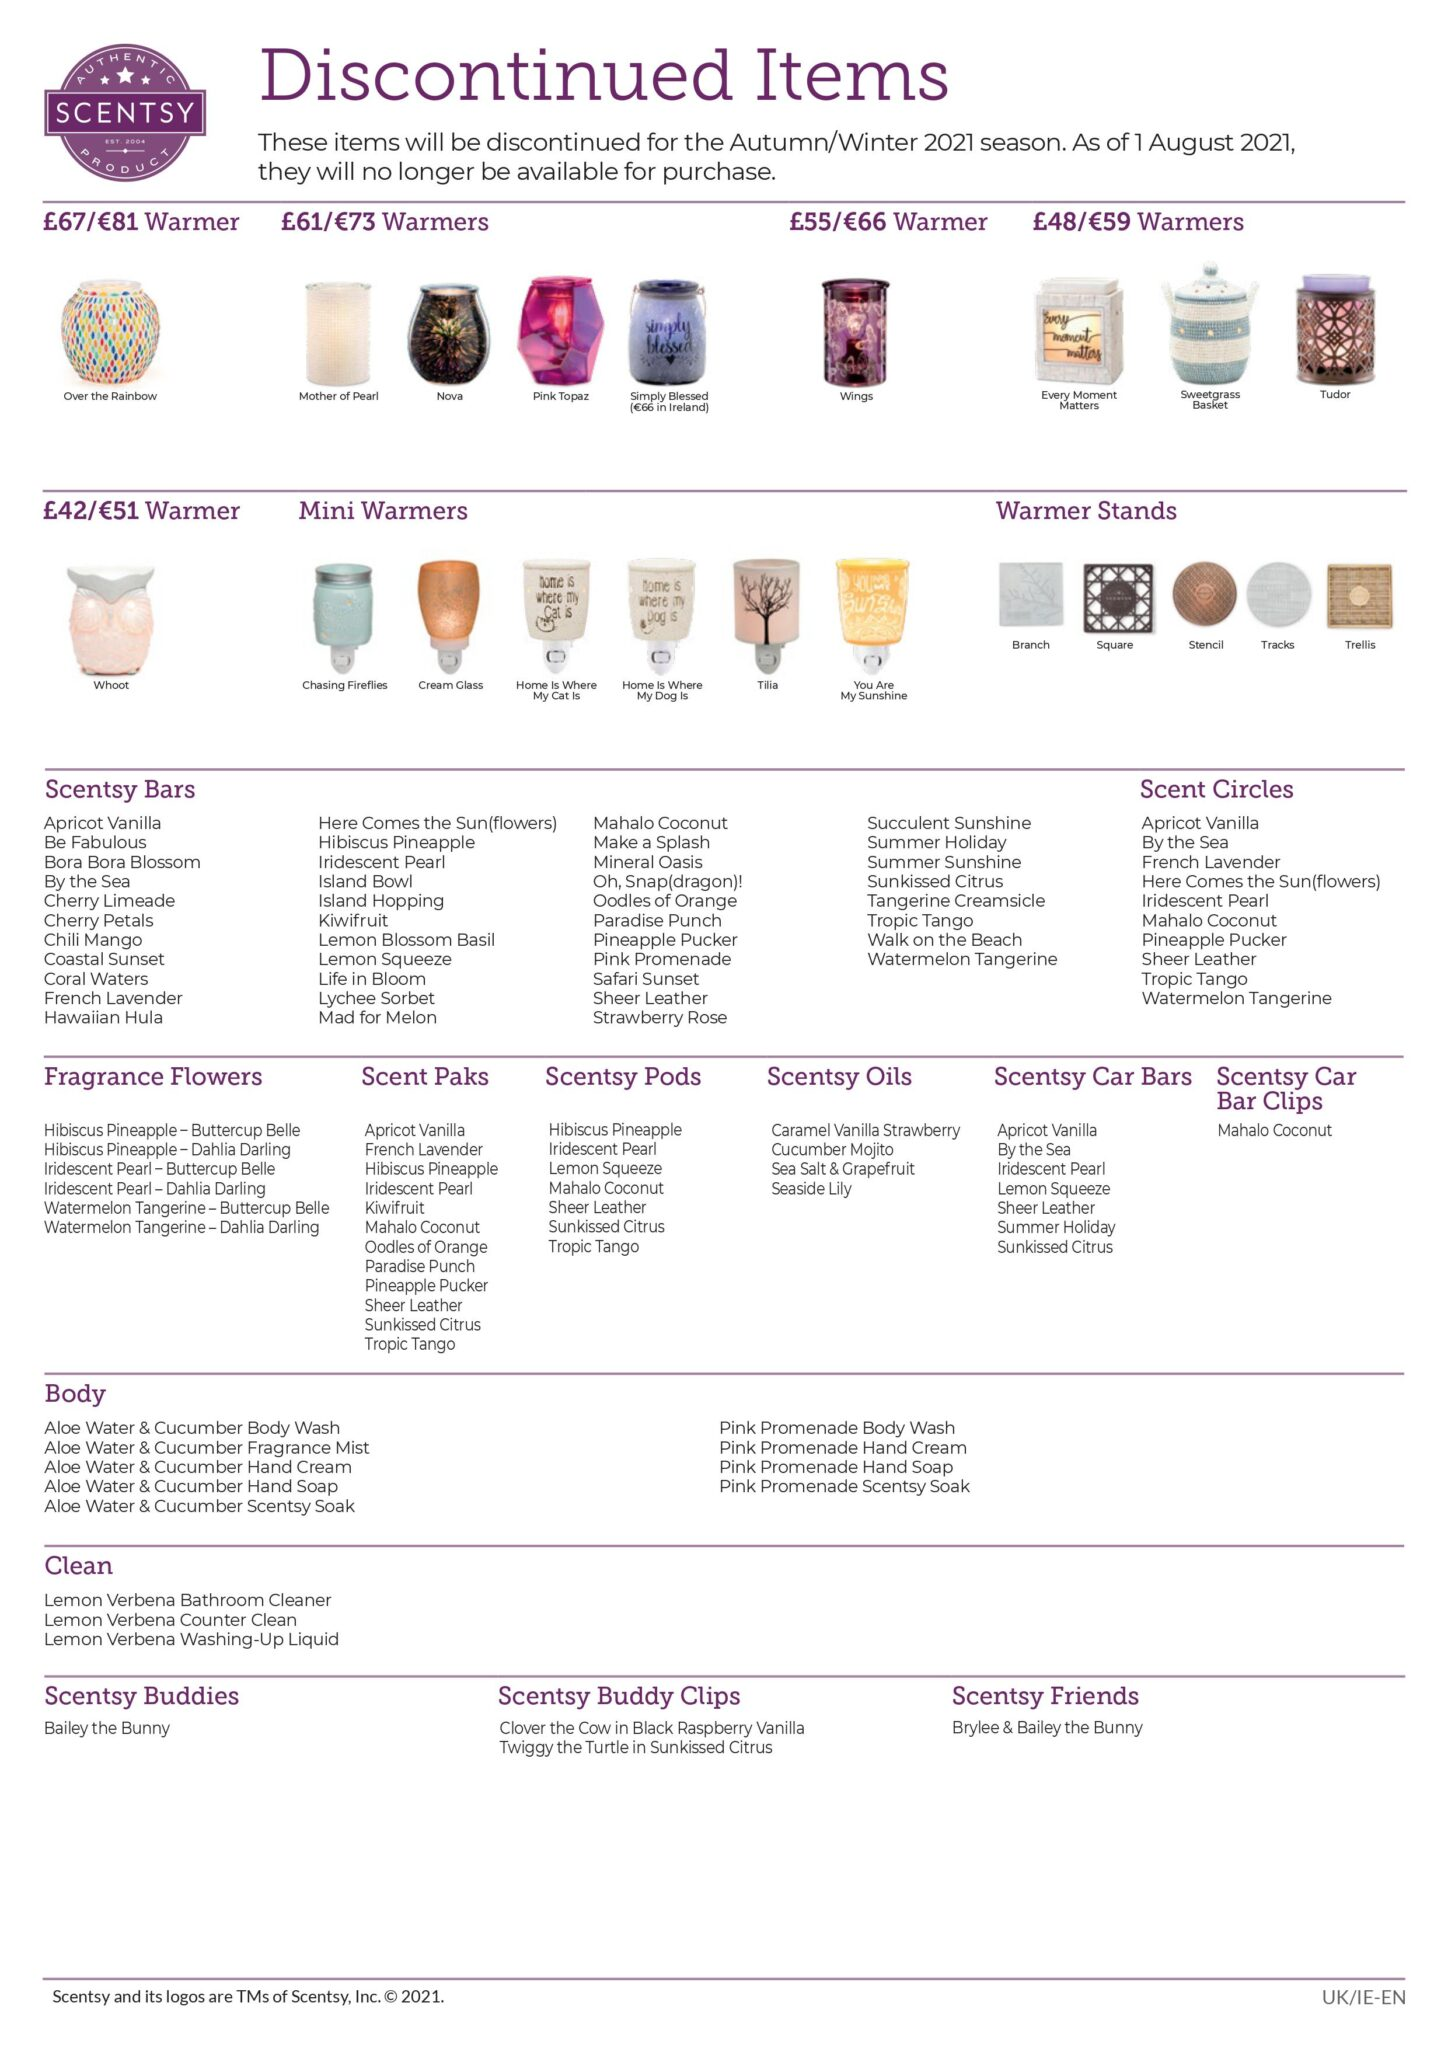 Scentsy Autumn Winter 2021 Discontinued List